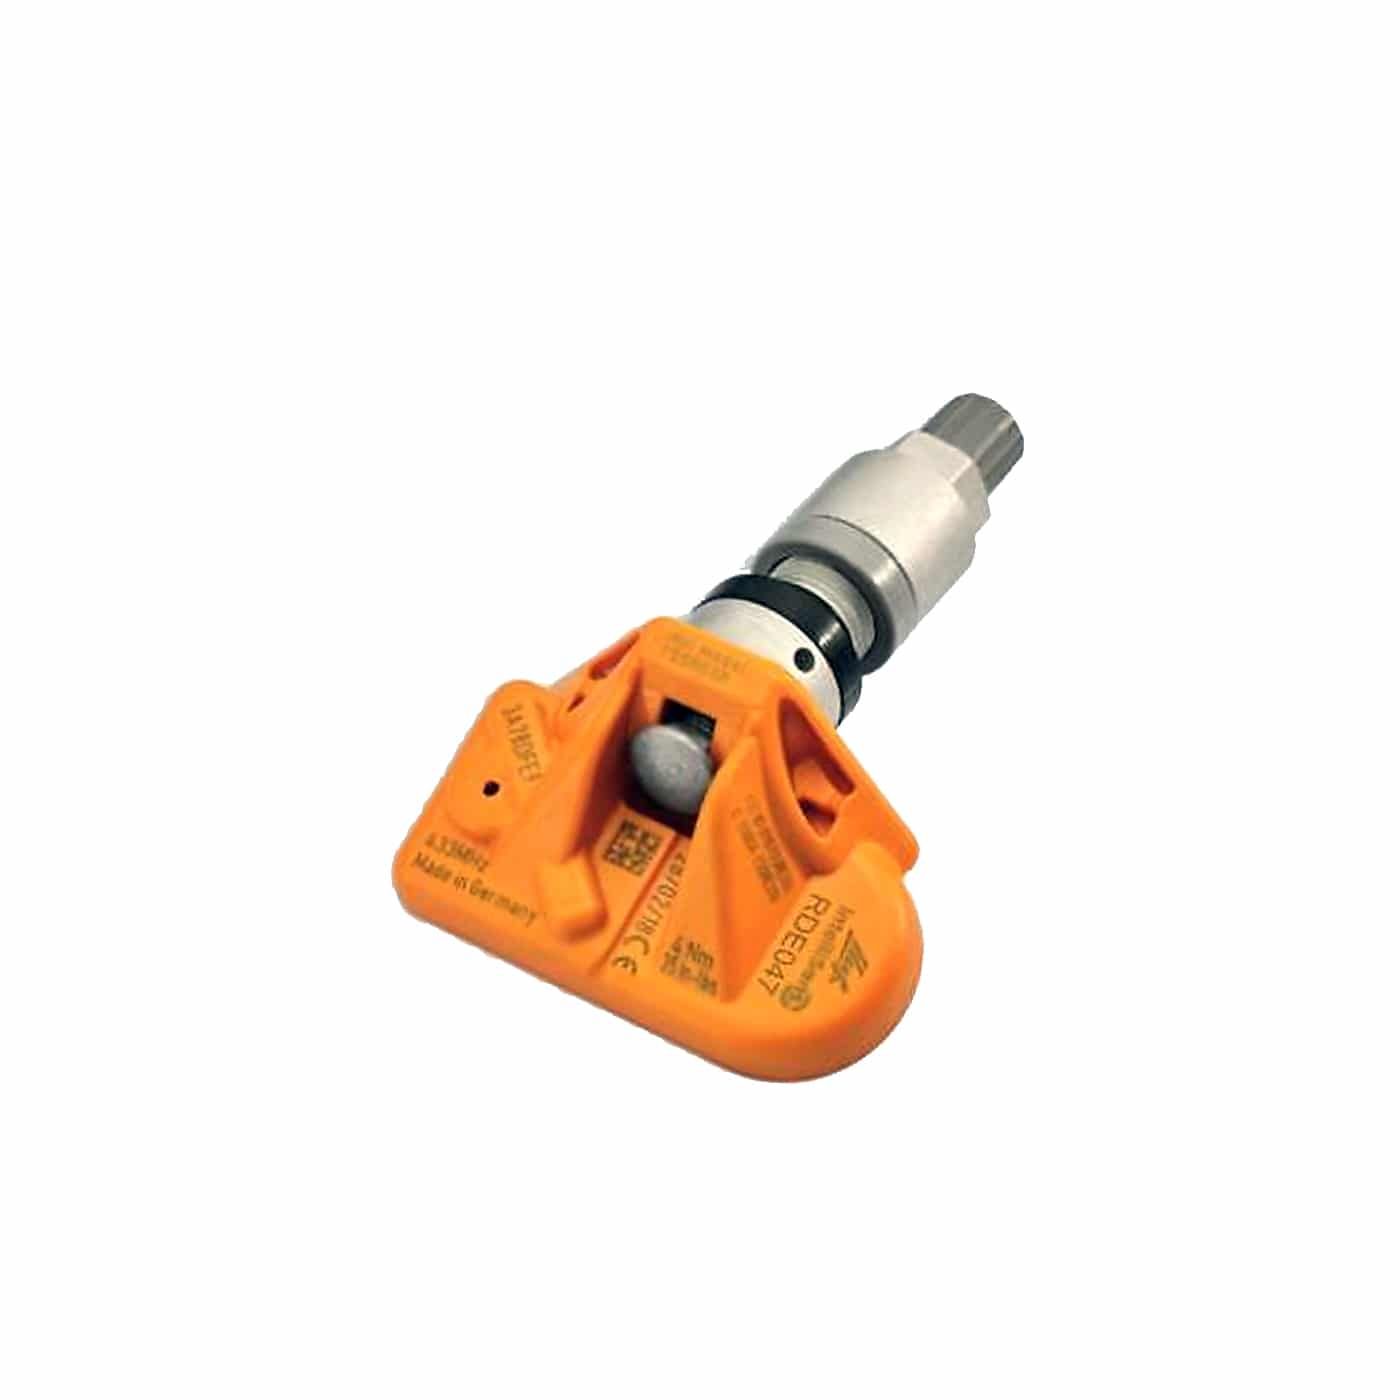 HUF Clamp-in RDE047